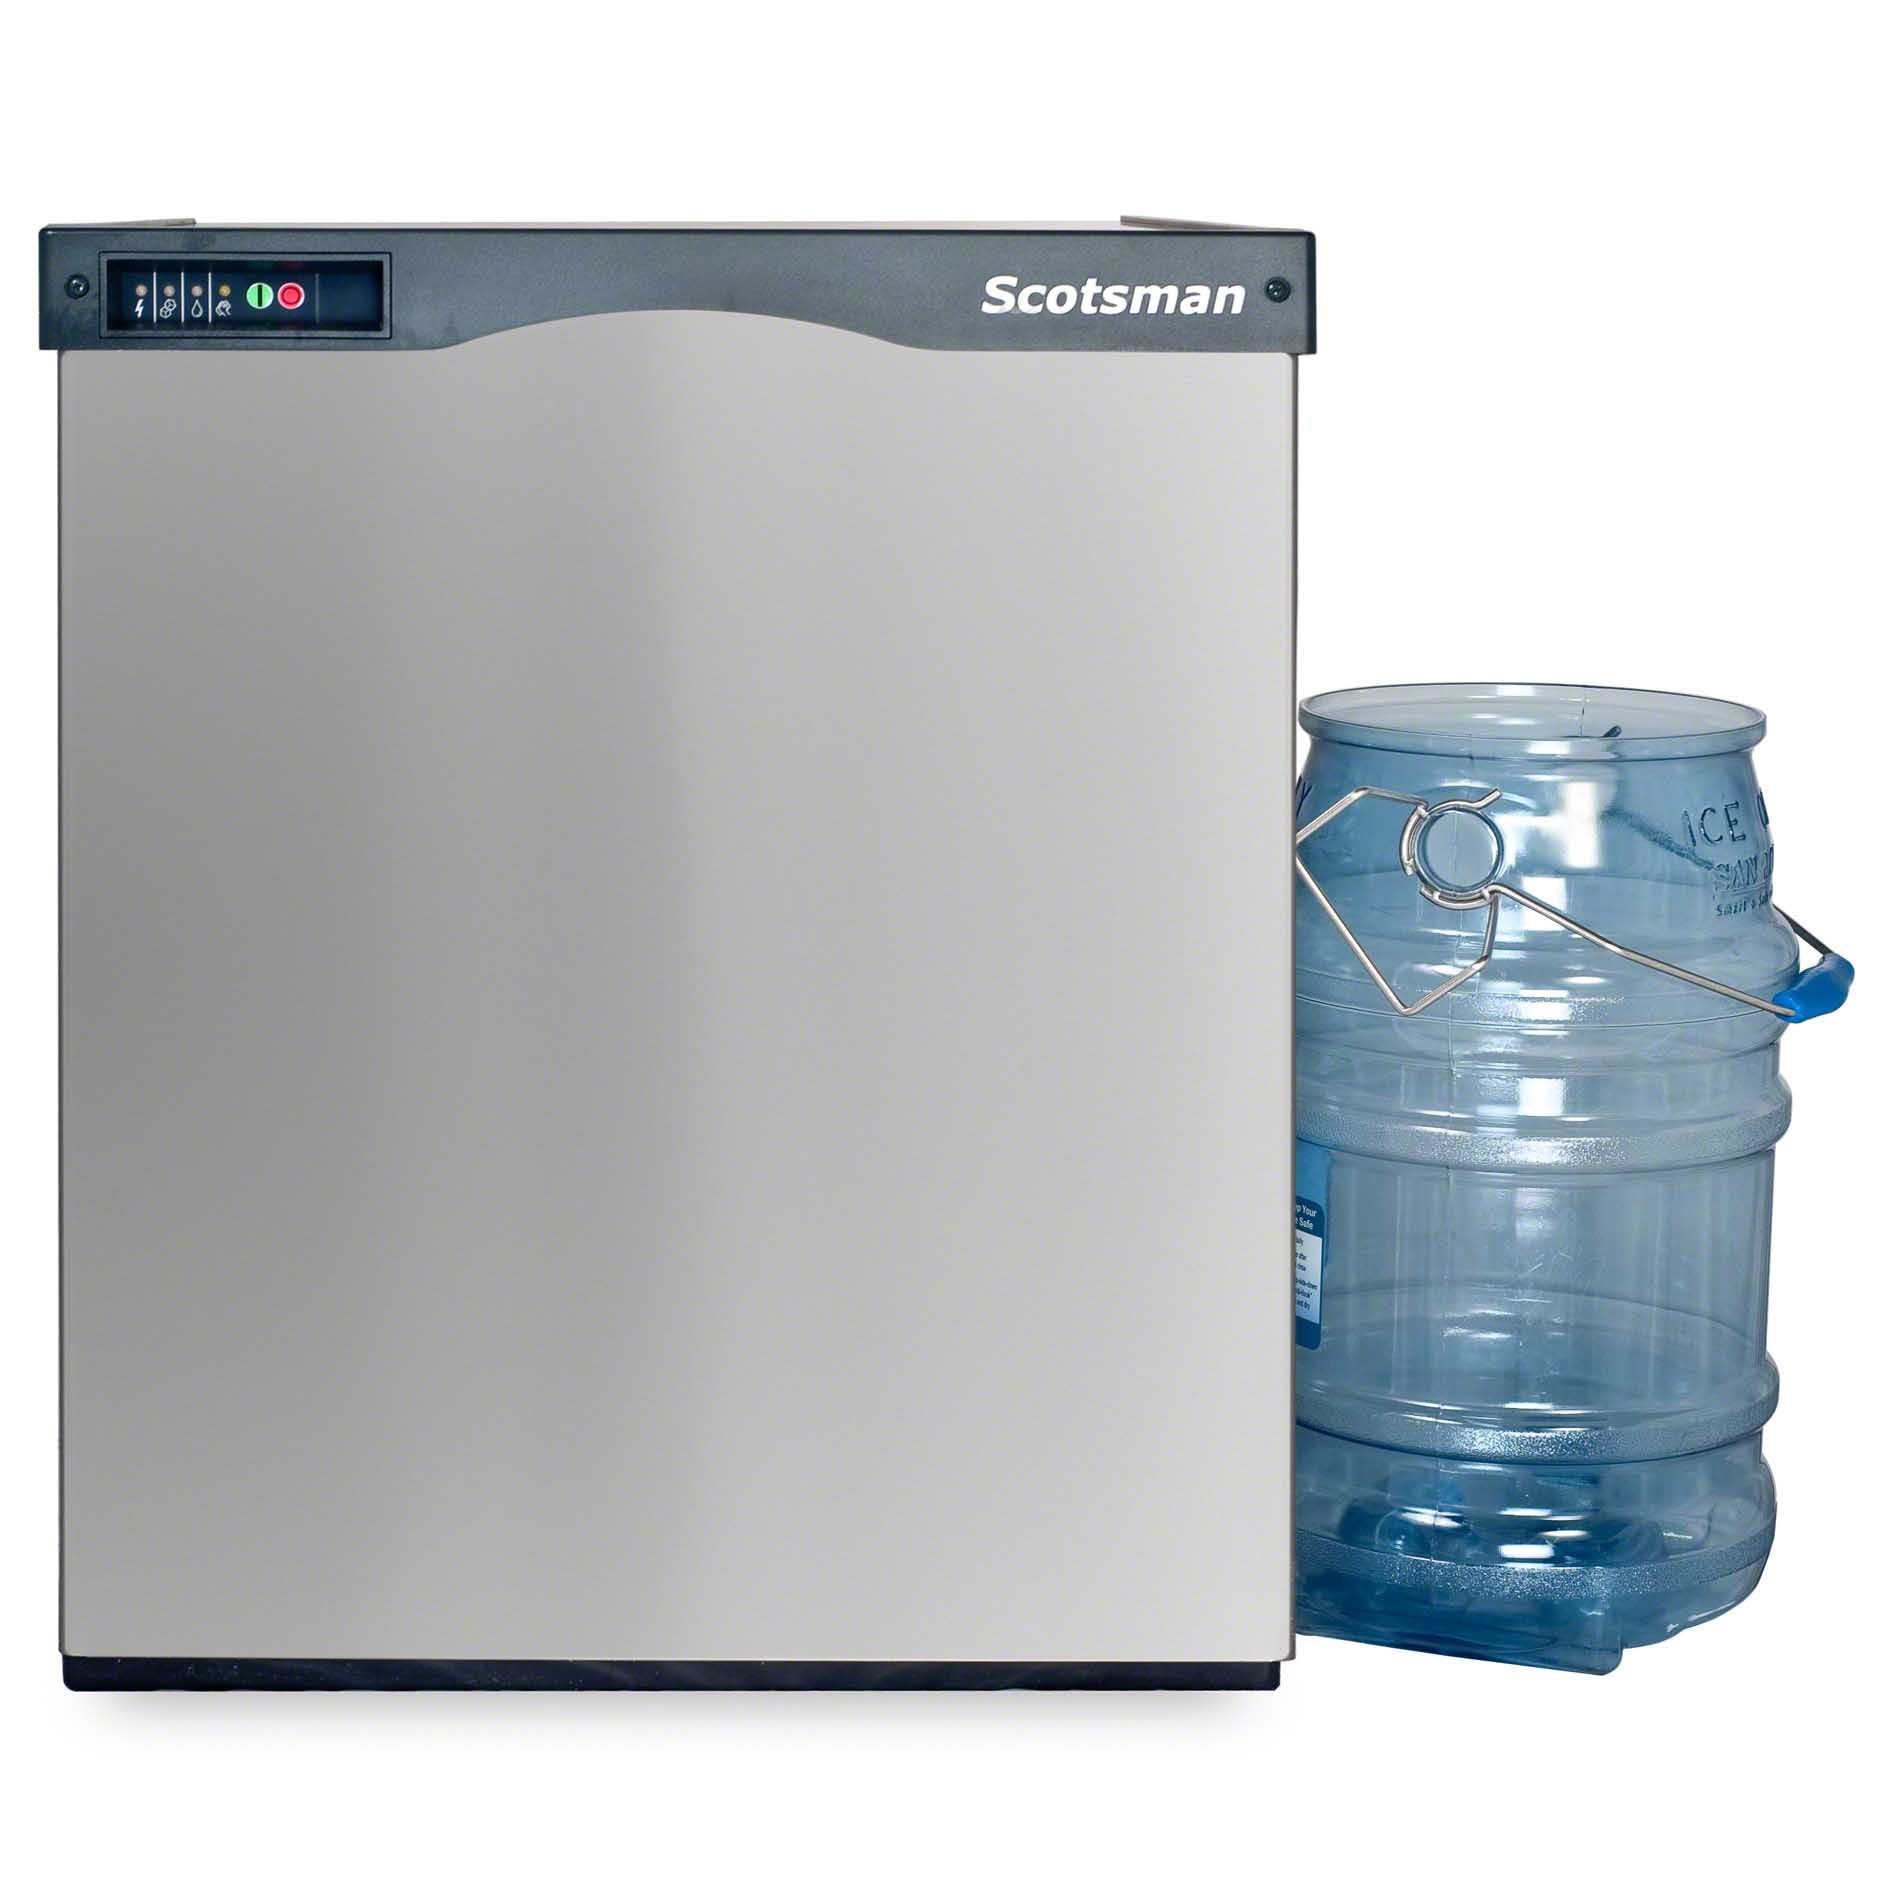 Scotsman - N1322W-32A 1354 lb Nugget Ice Machine - Prodigy Series Ice machine sold by Food Service Warehouse